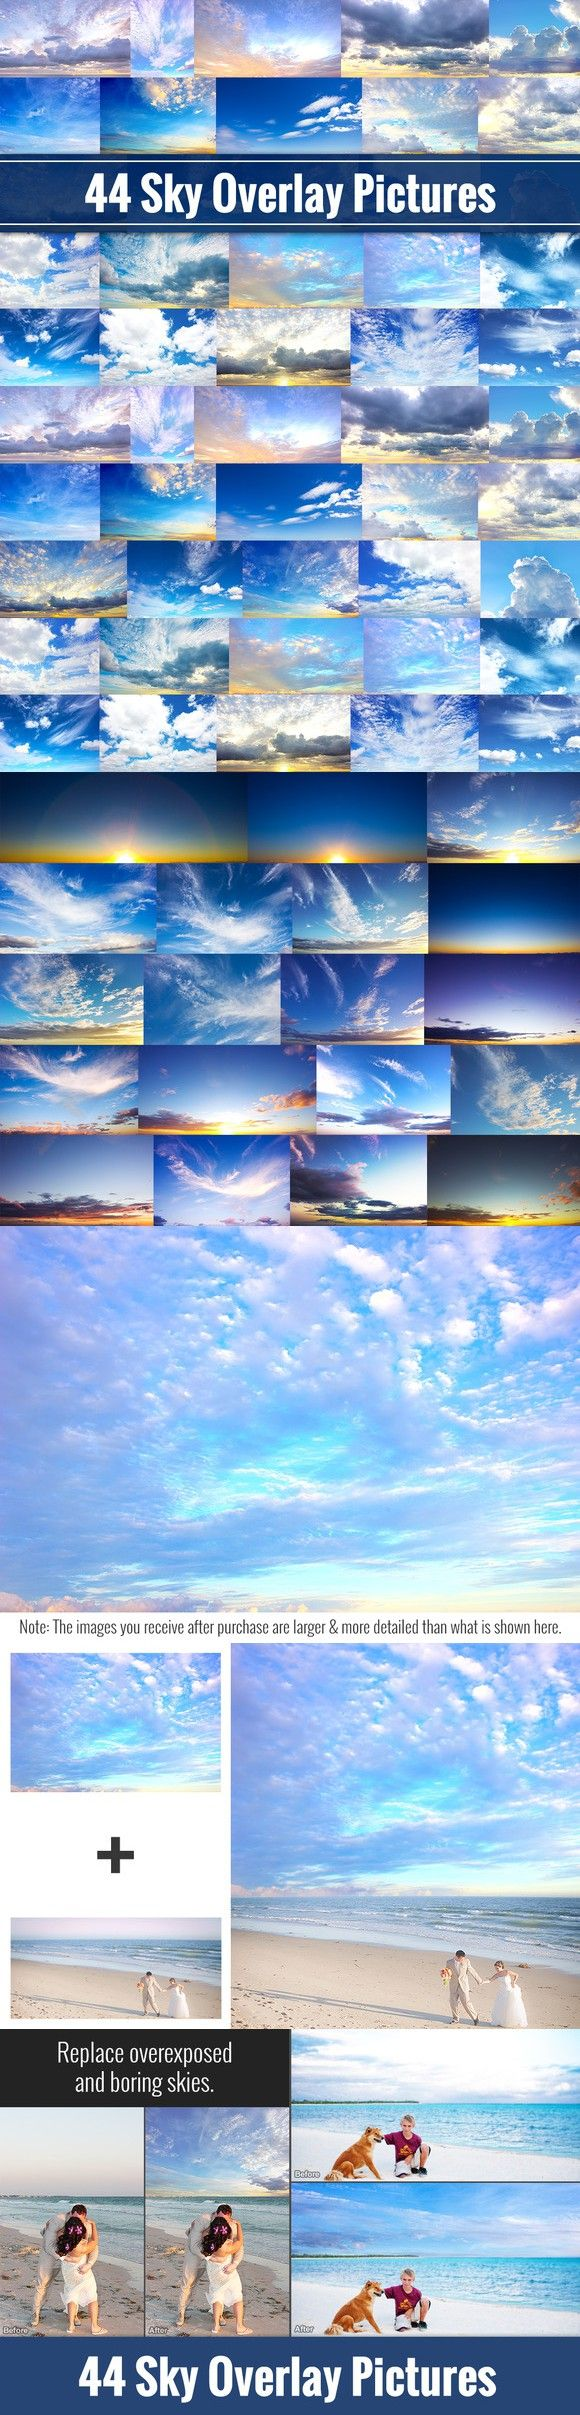 how to make a cloud layer in photoshop